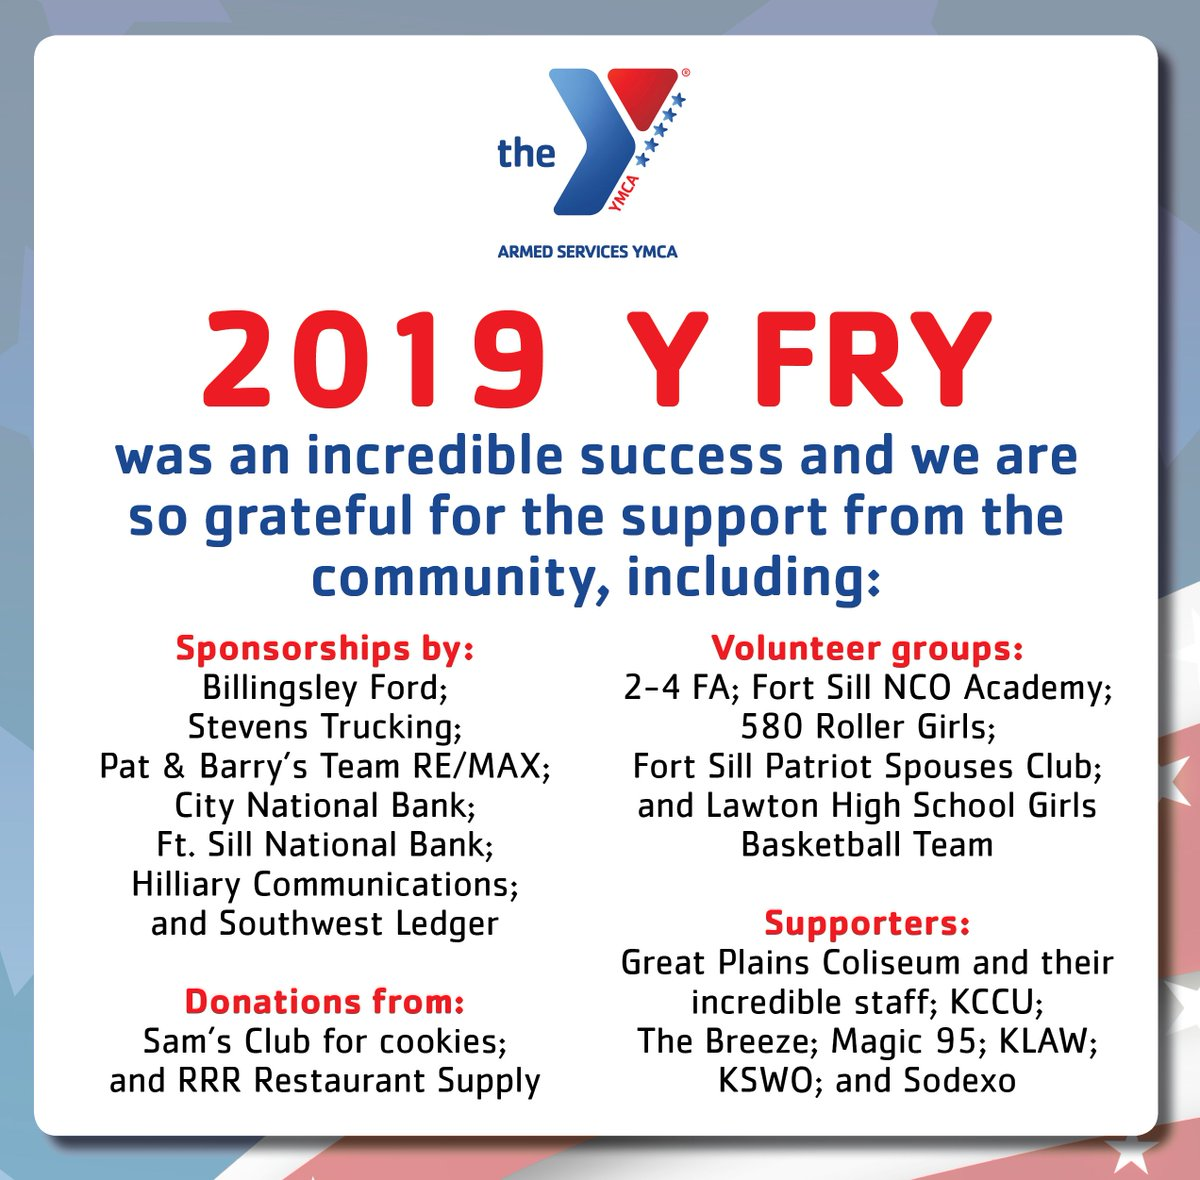 Thank you to all who turned out for #YFRY2019 and to all those who contributed to the success of the event! It was such an amazing Y FRY!